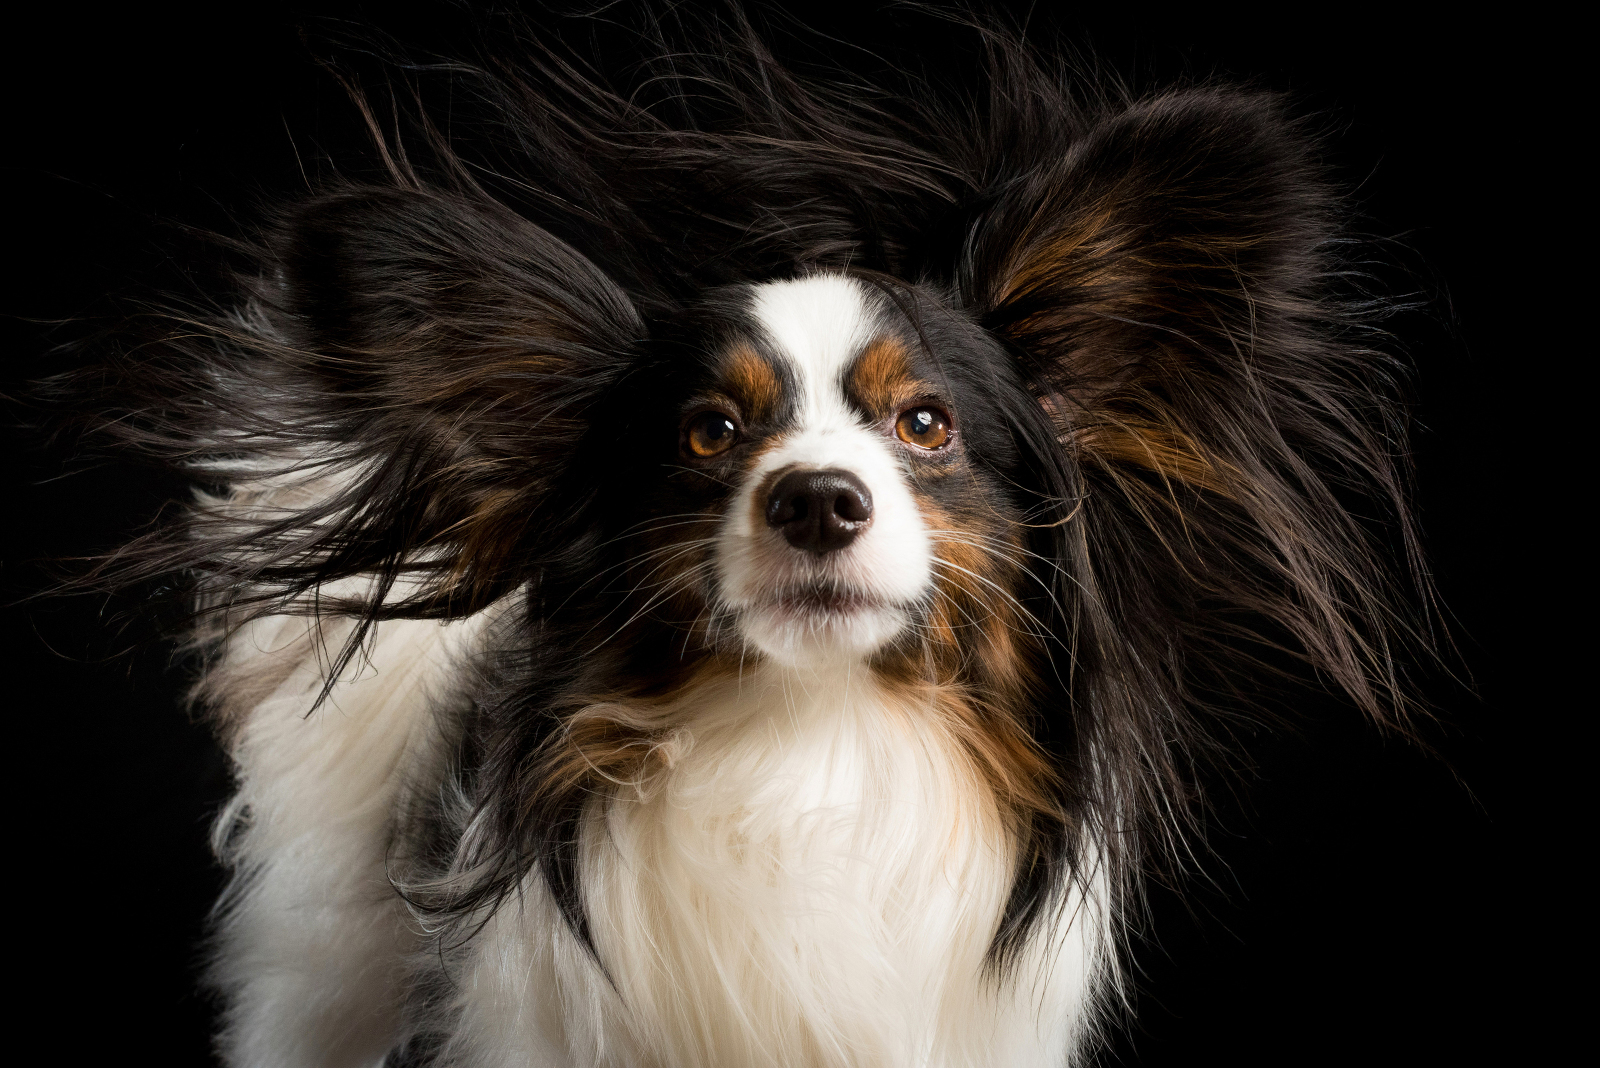 Dog Merlin getting a blowout during his photoshoot. Photographed by Candice Cusic